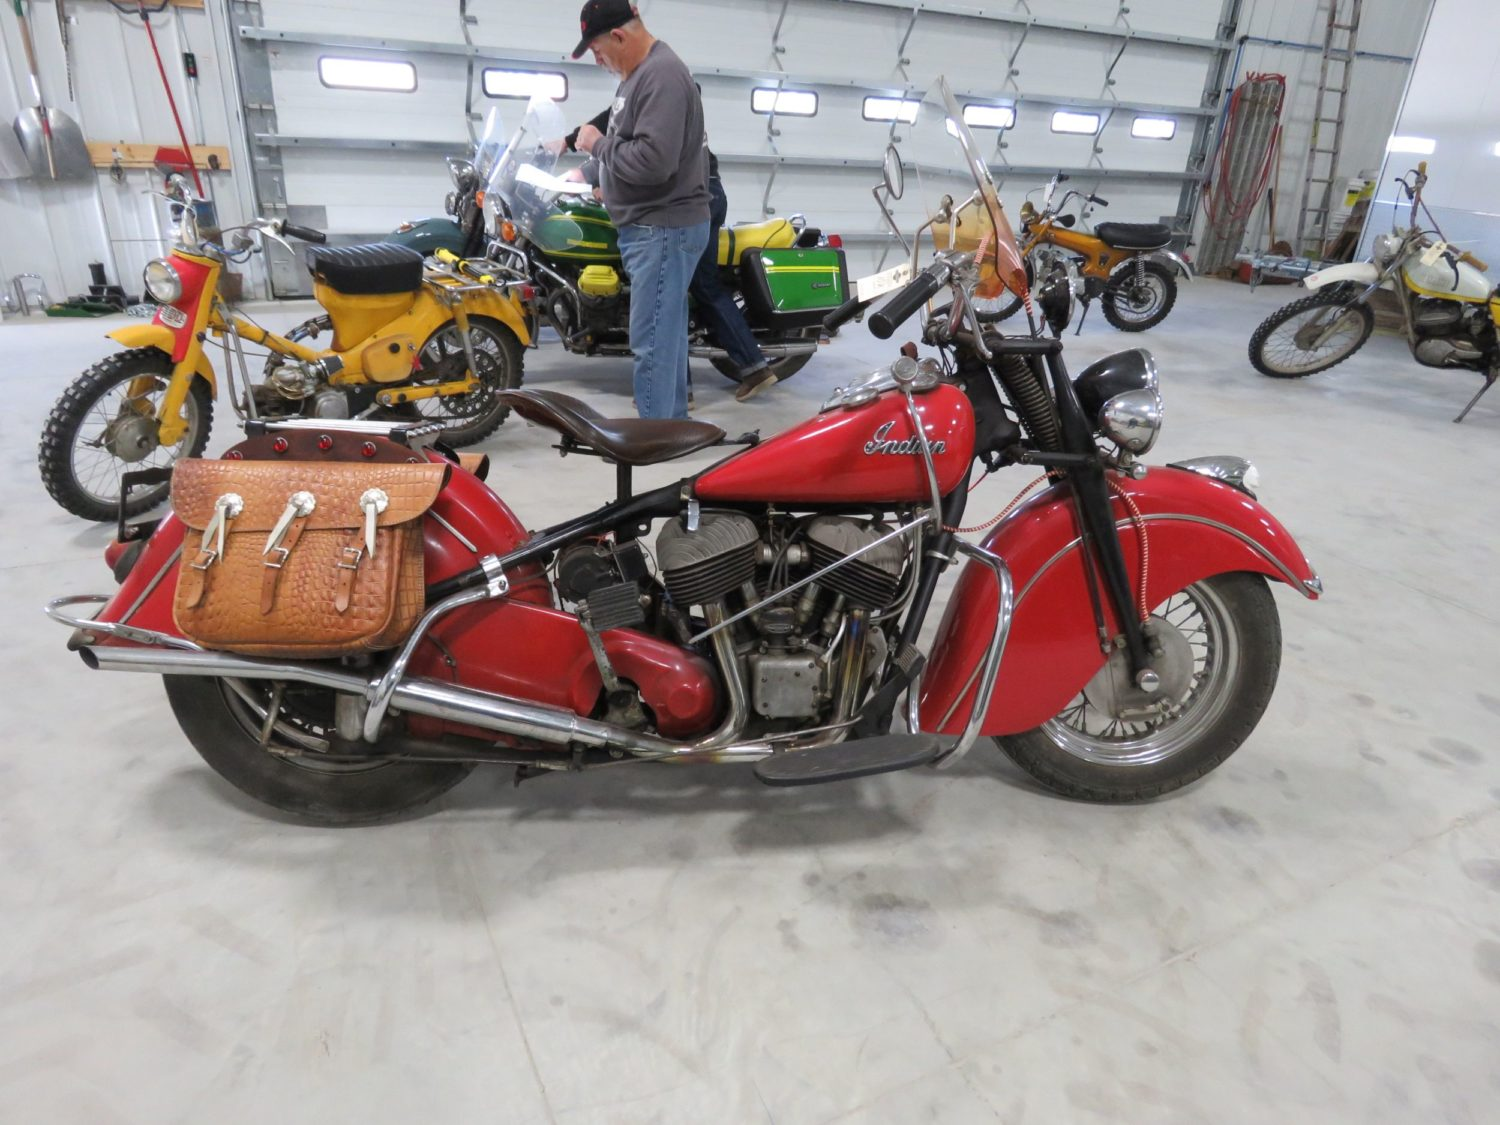 Vintage Motorcycles, & More! Kim Ferry Collection featured at Baxter Cycle Open House & Auction - image 3